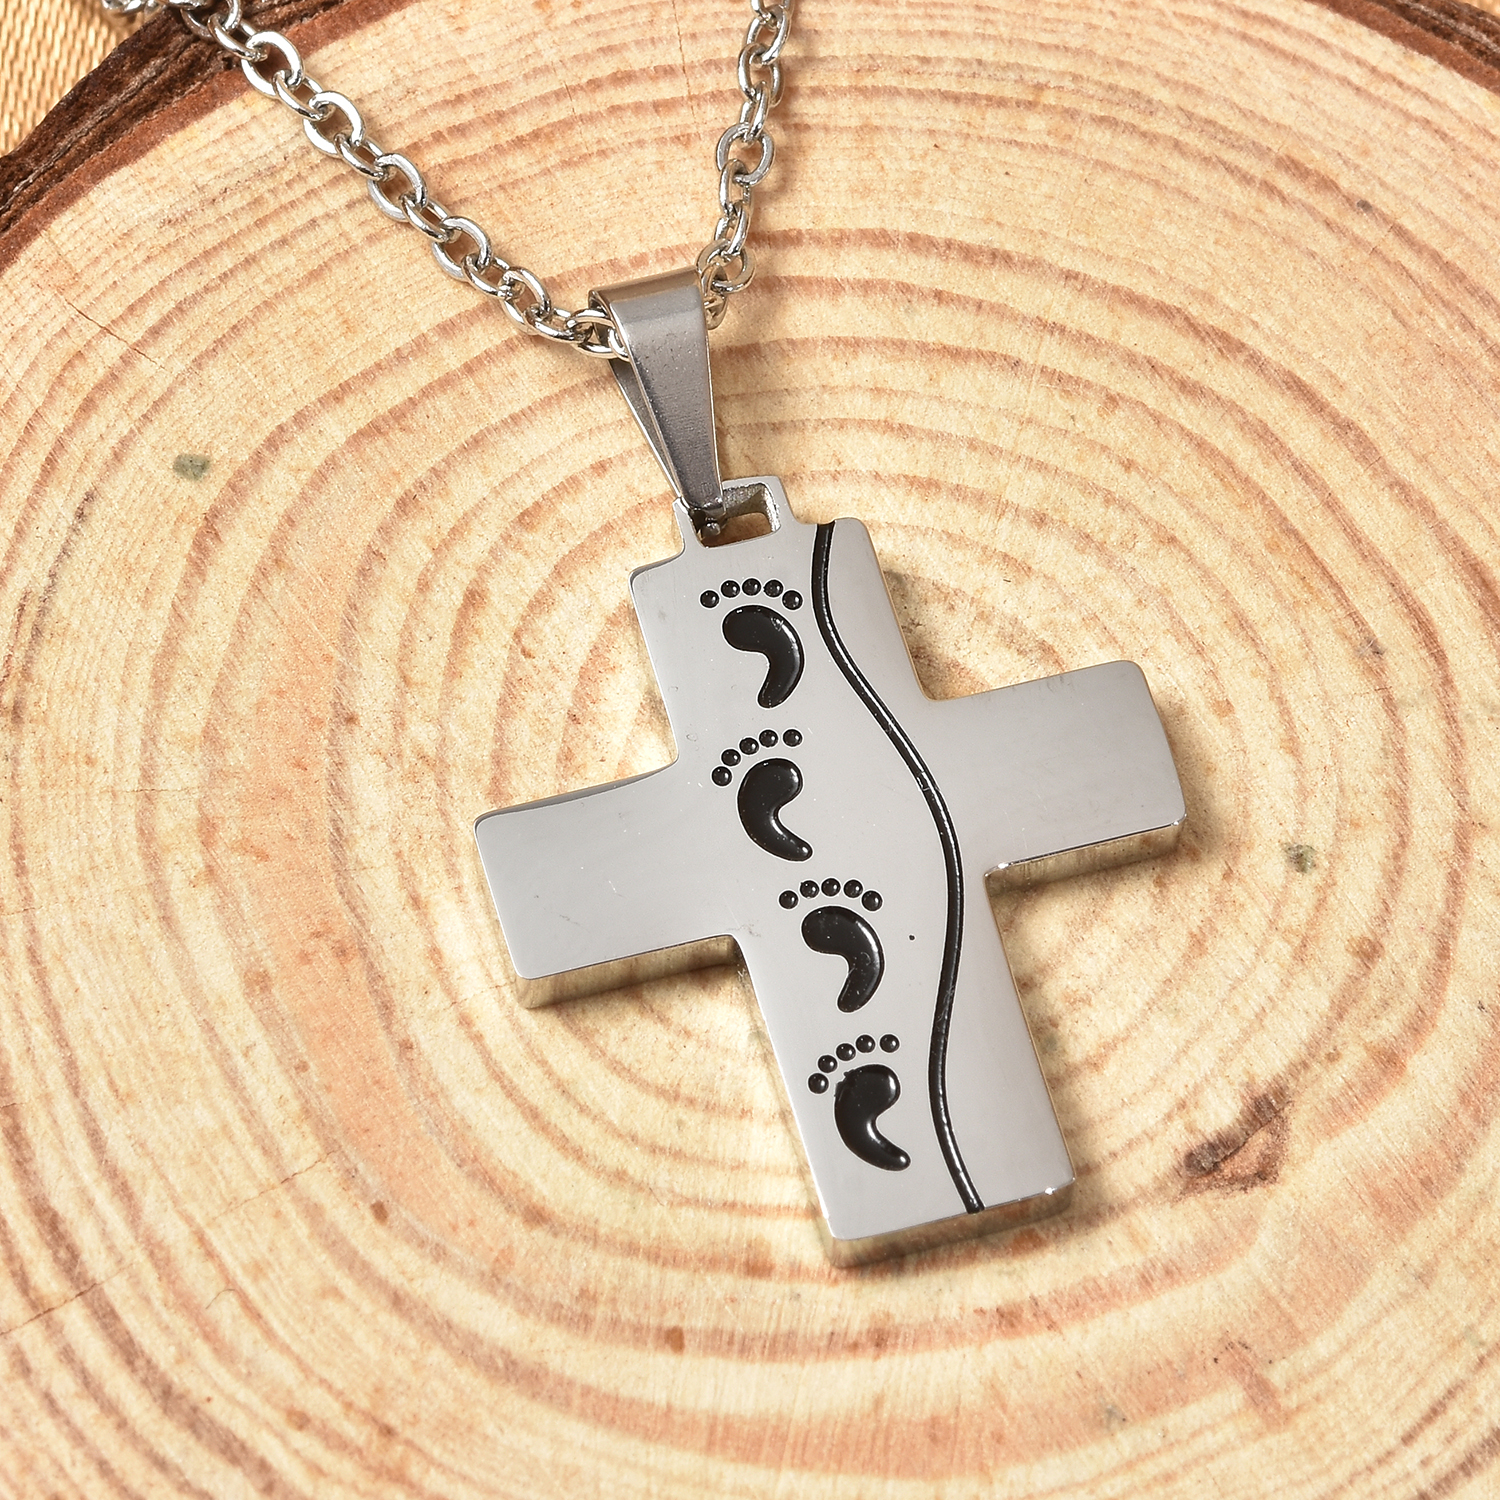 Footprint Engraved Pendant Necklace 19.50 Inch In Black